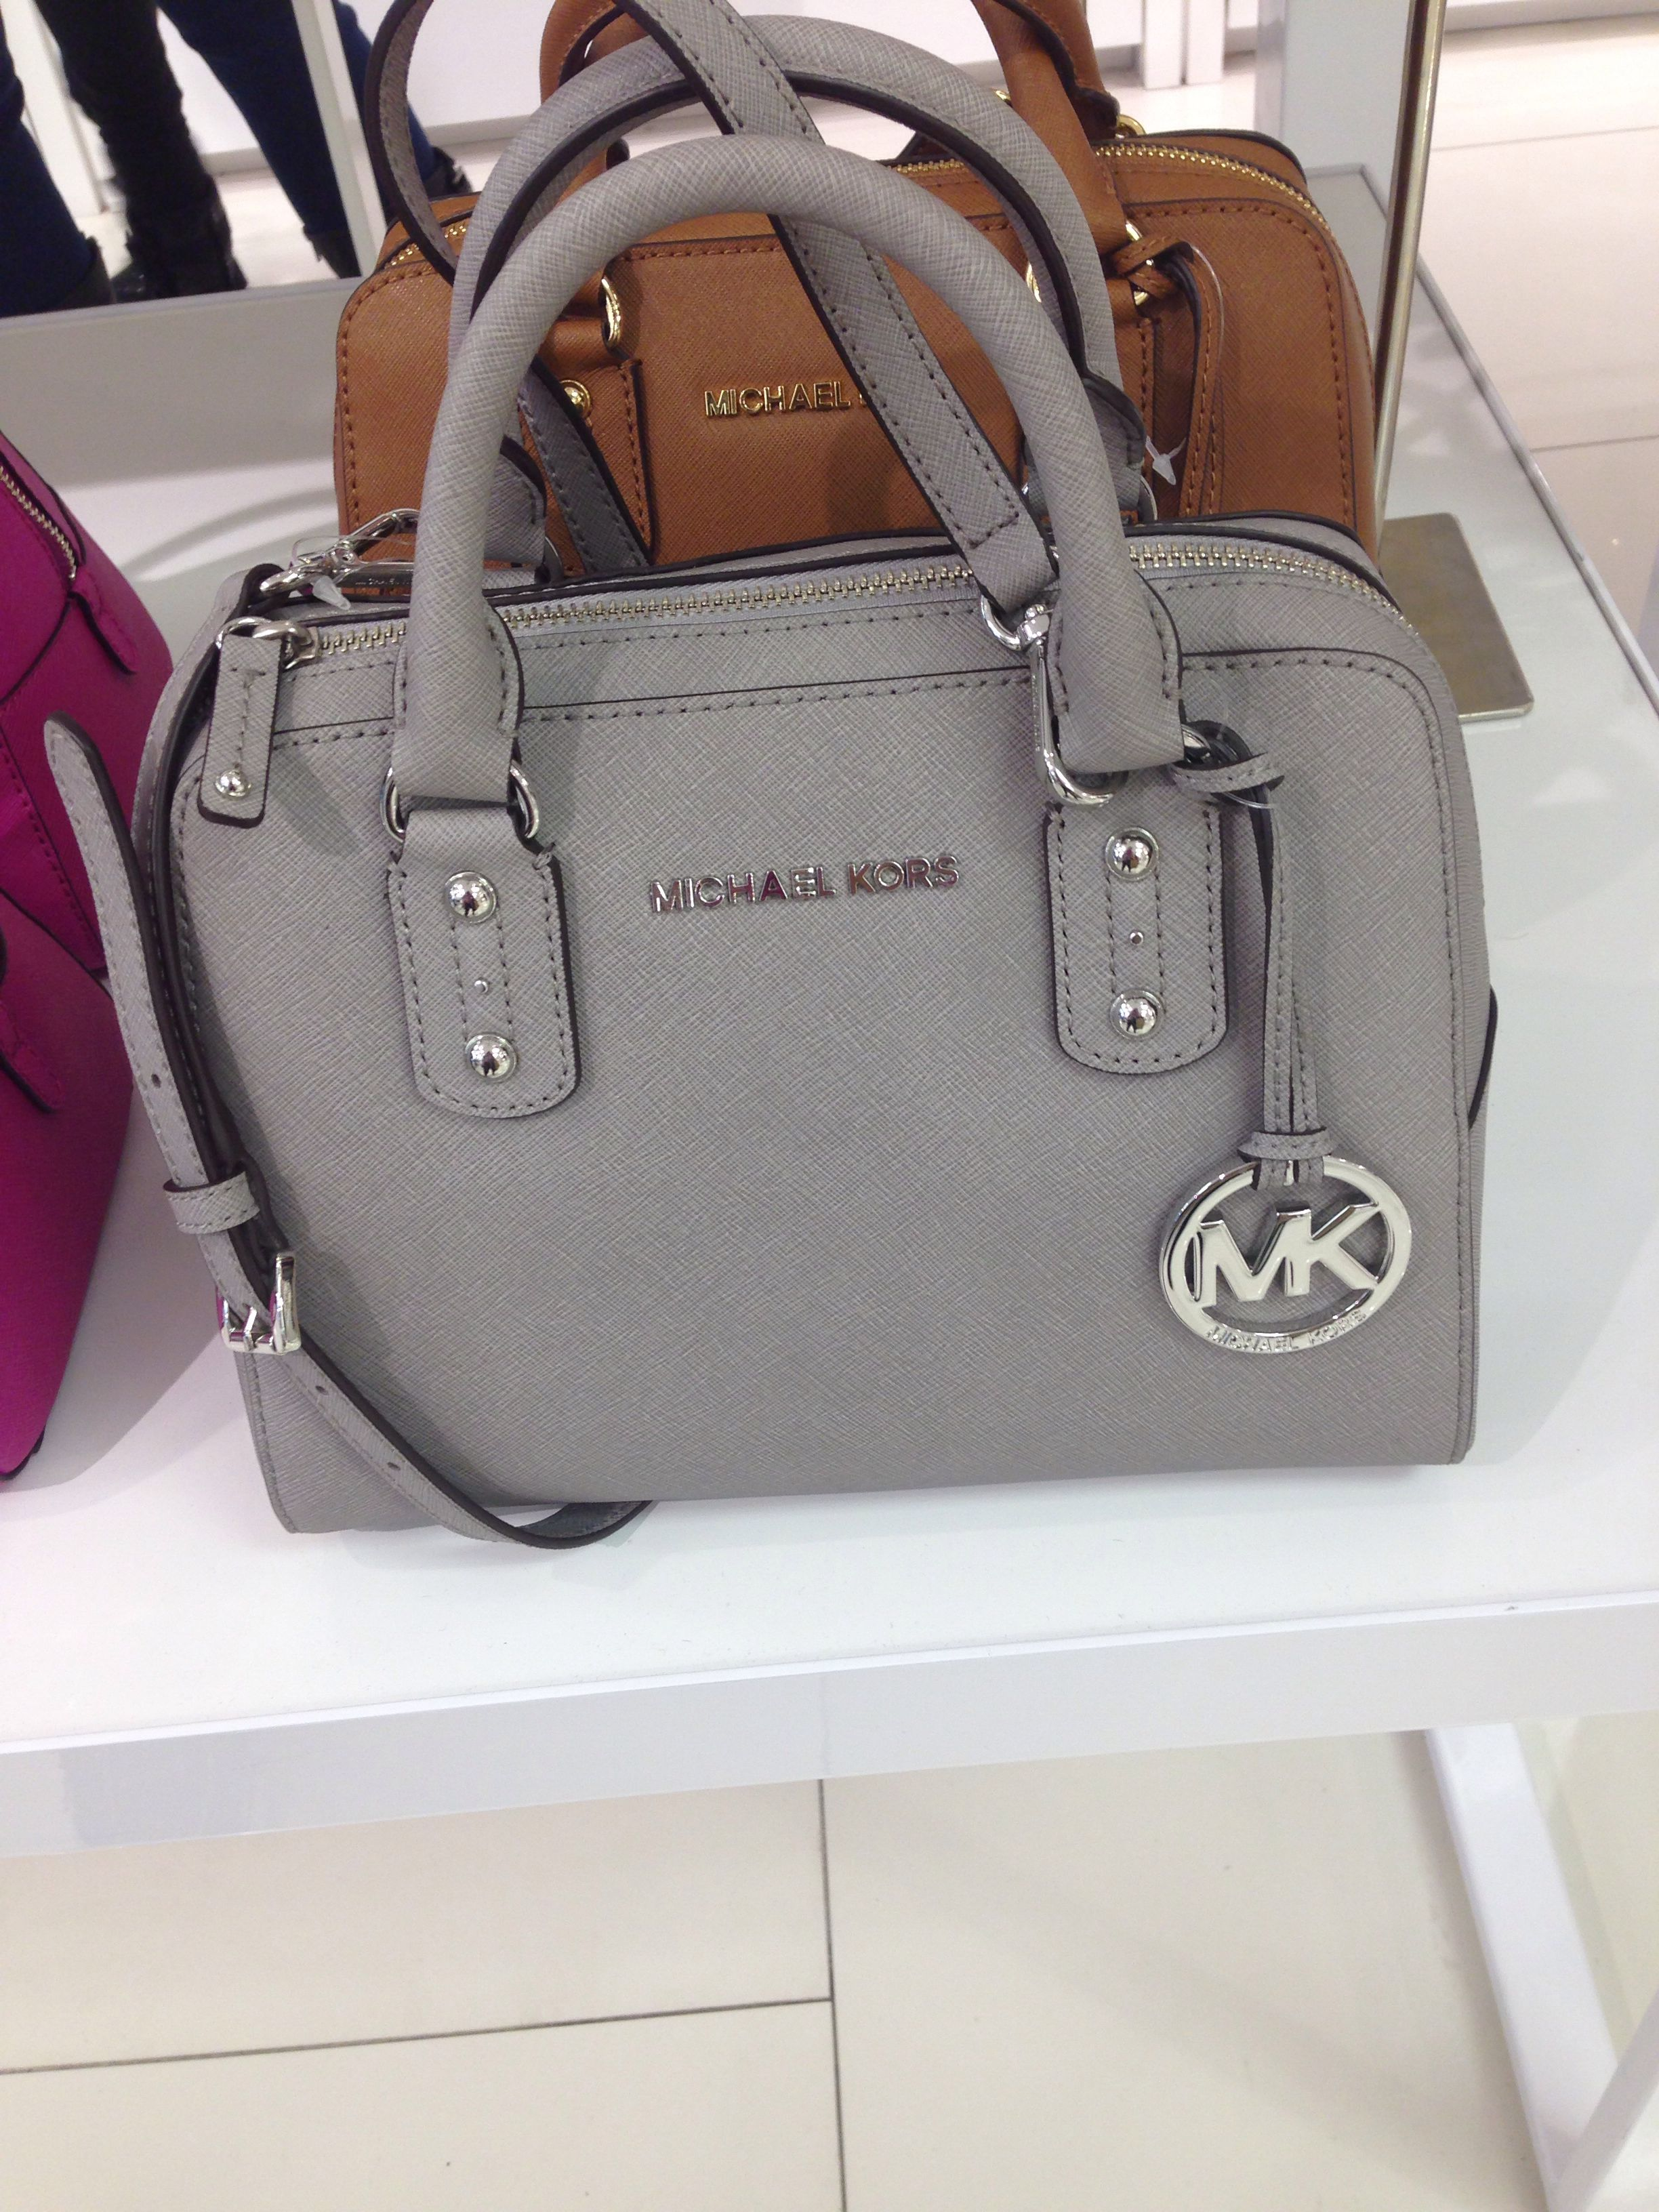 2015 mk handbags discount for you only 39 this oh my god mk [ 2448 x 3264 Pixel ]